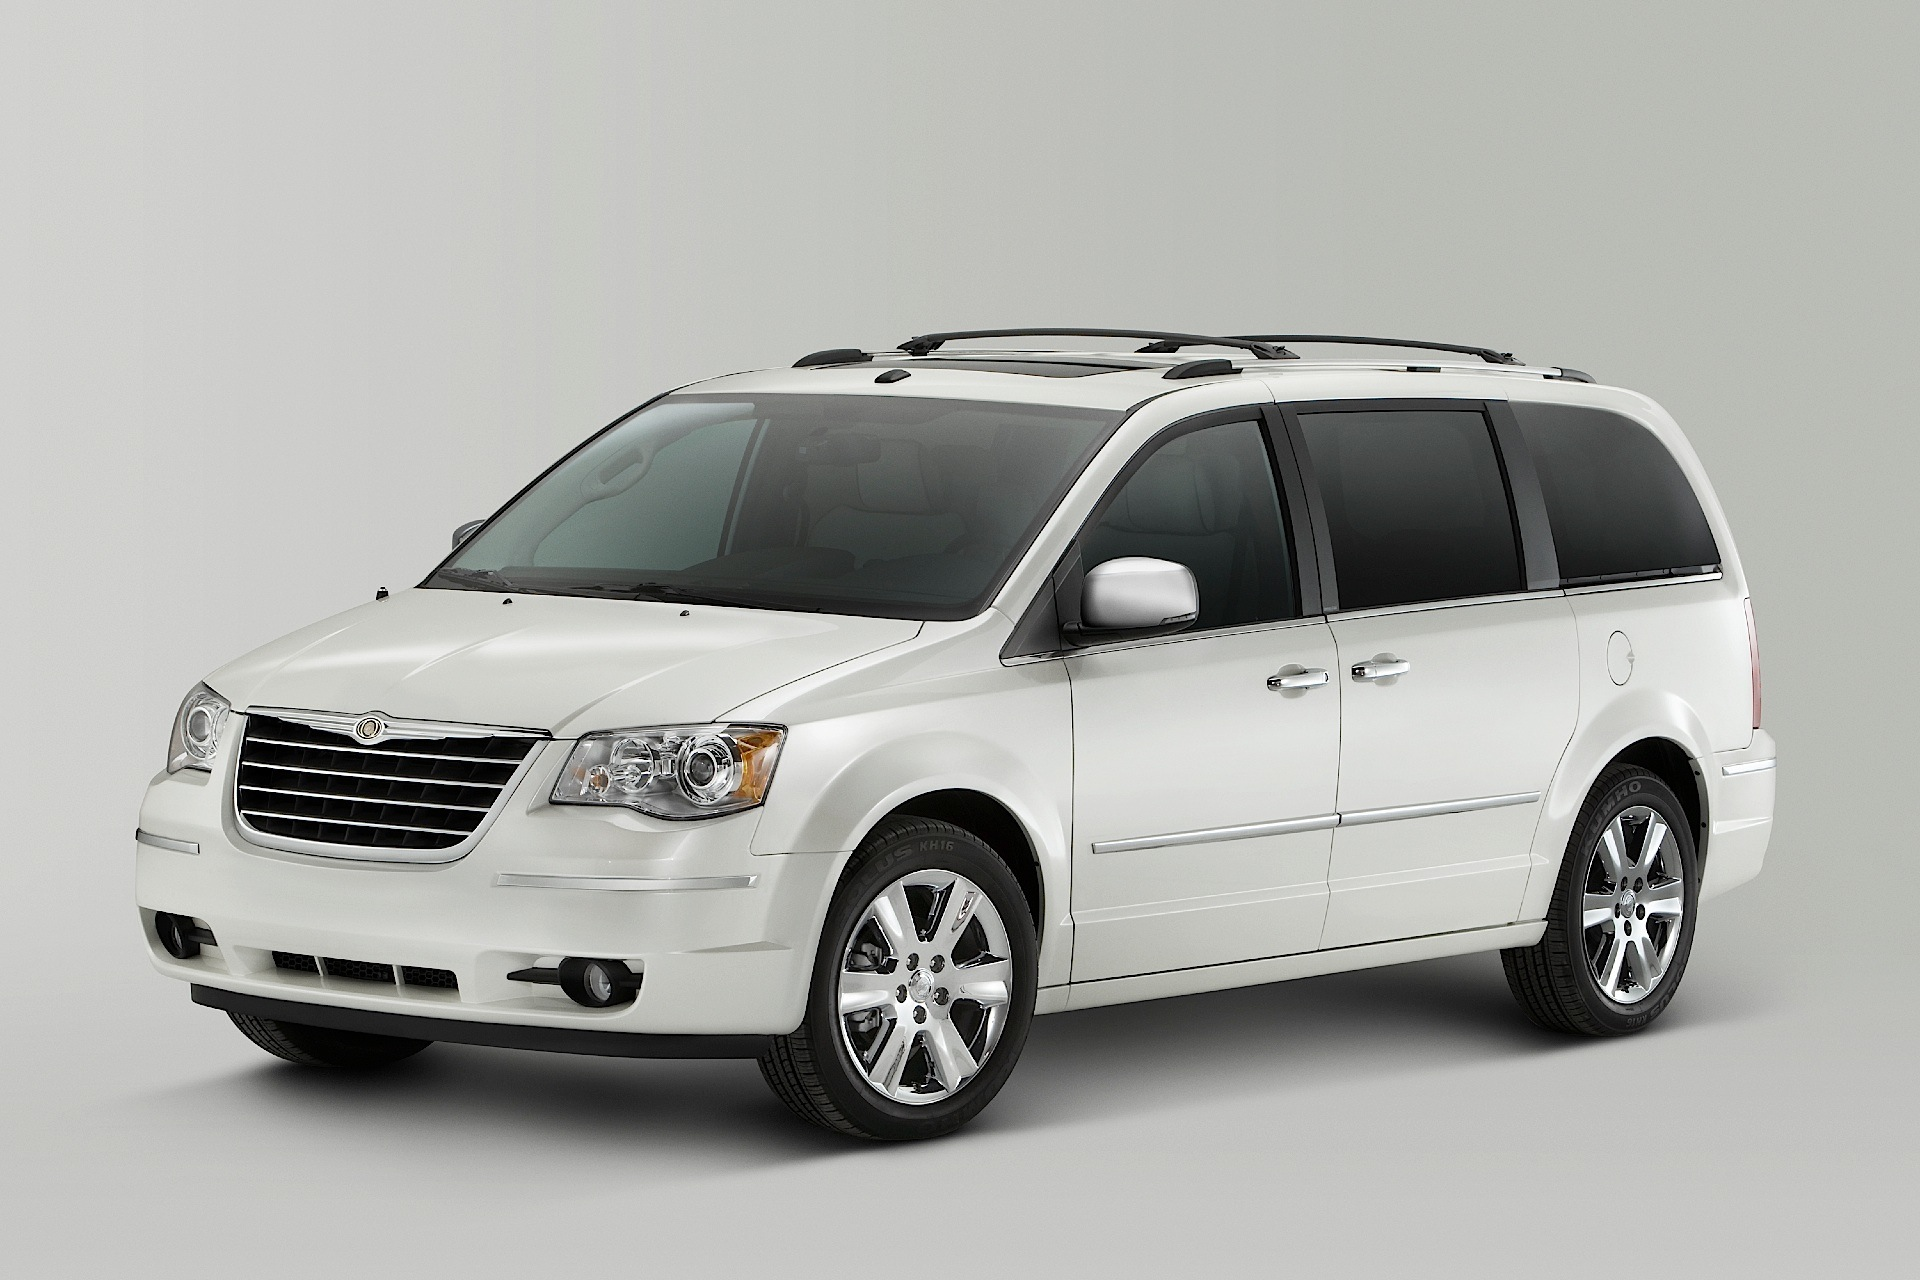 Pictures of chrysler town & country